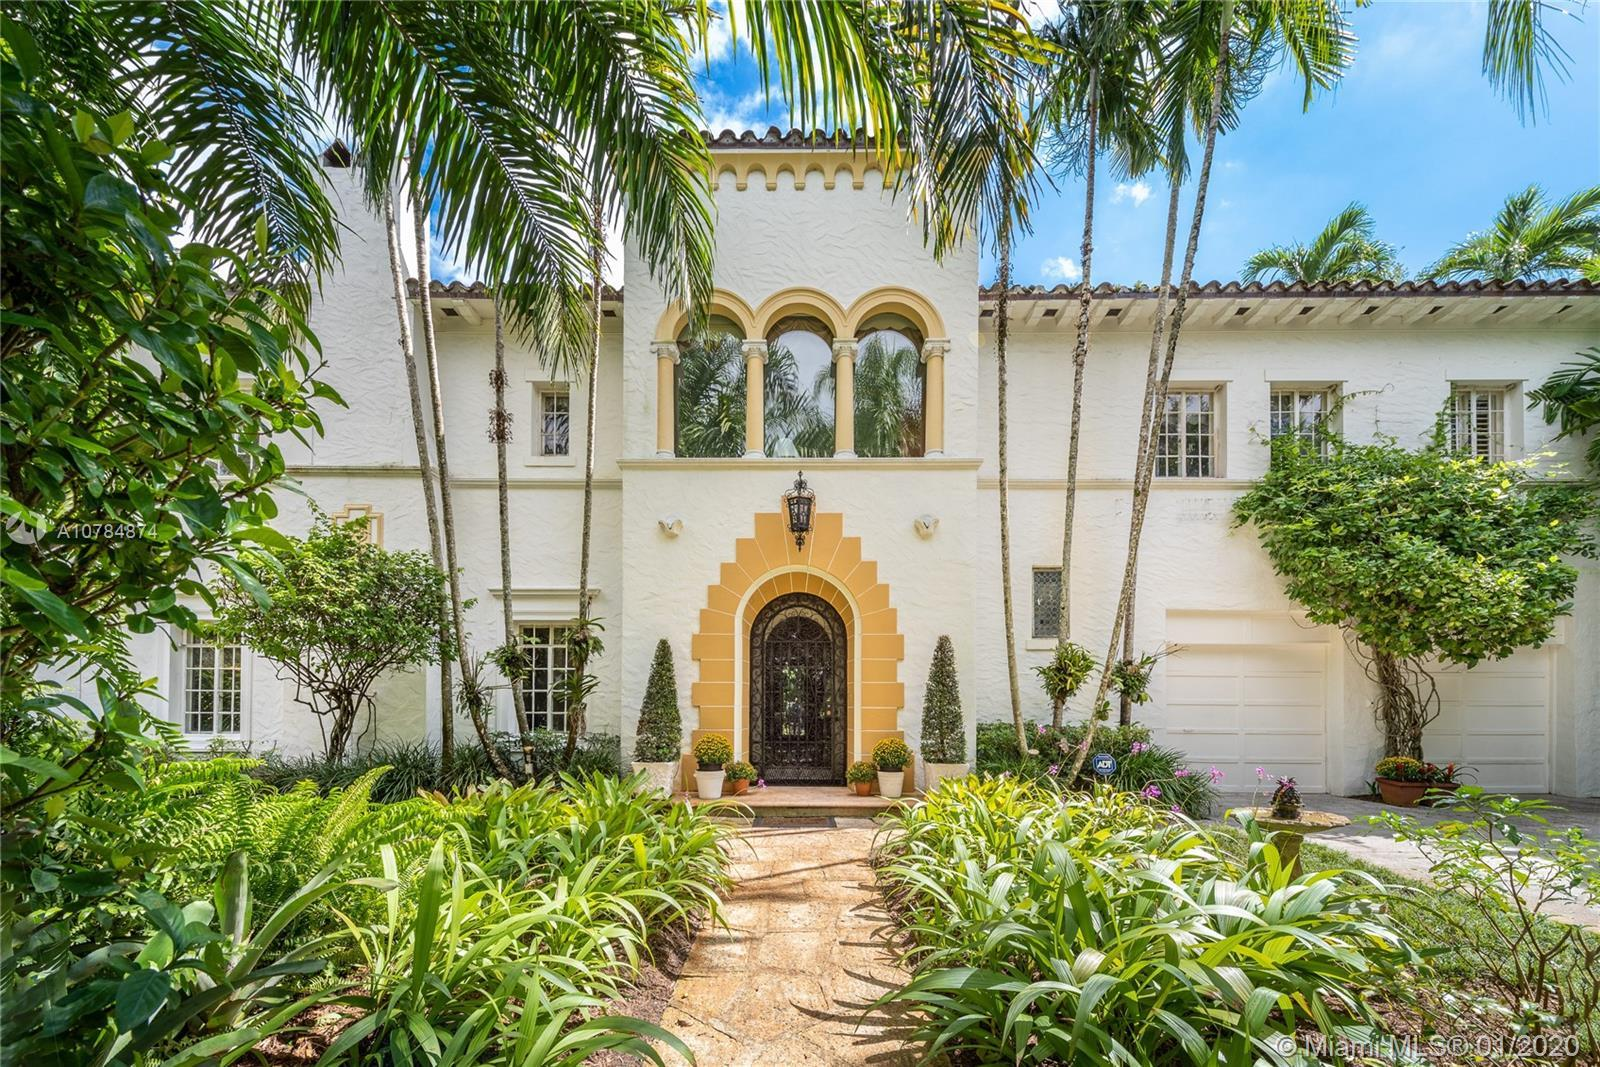 This classic 1926 Mediterranean villa is a crown jewel of Coral Gables. Nearly 5,000 adj. sq. ft. on